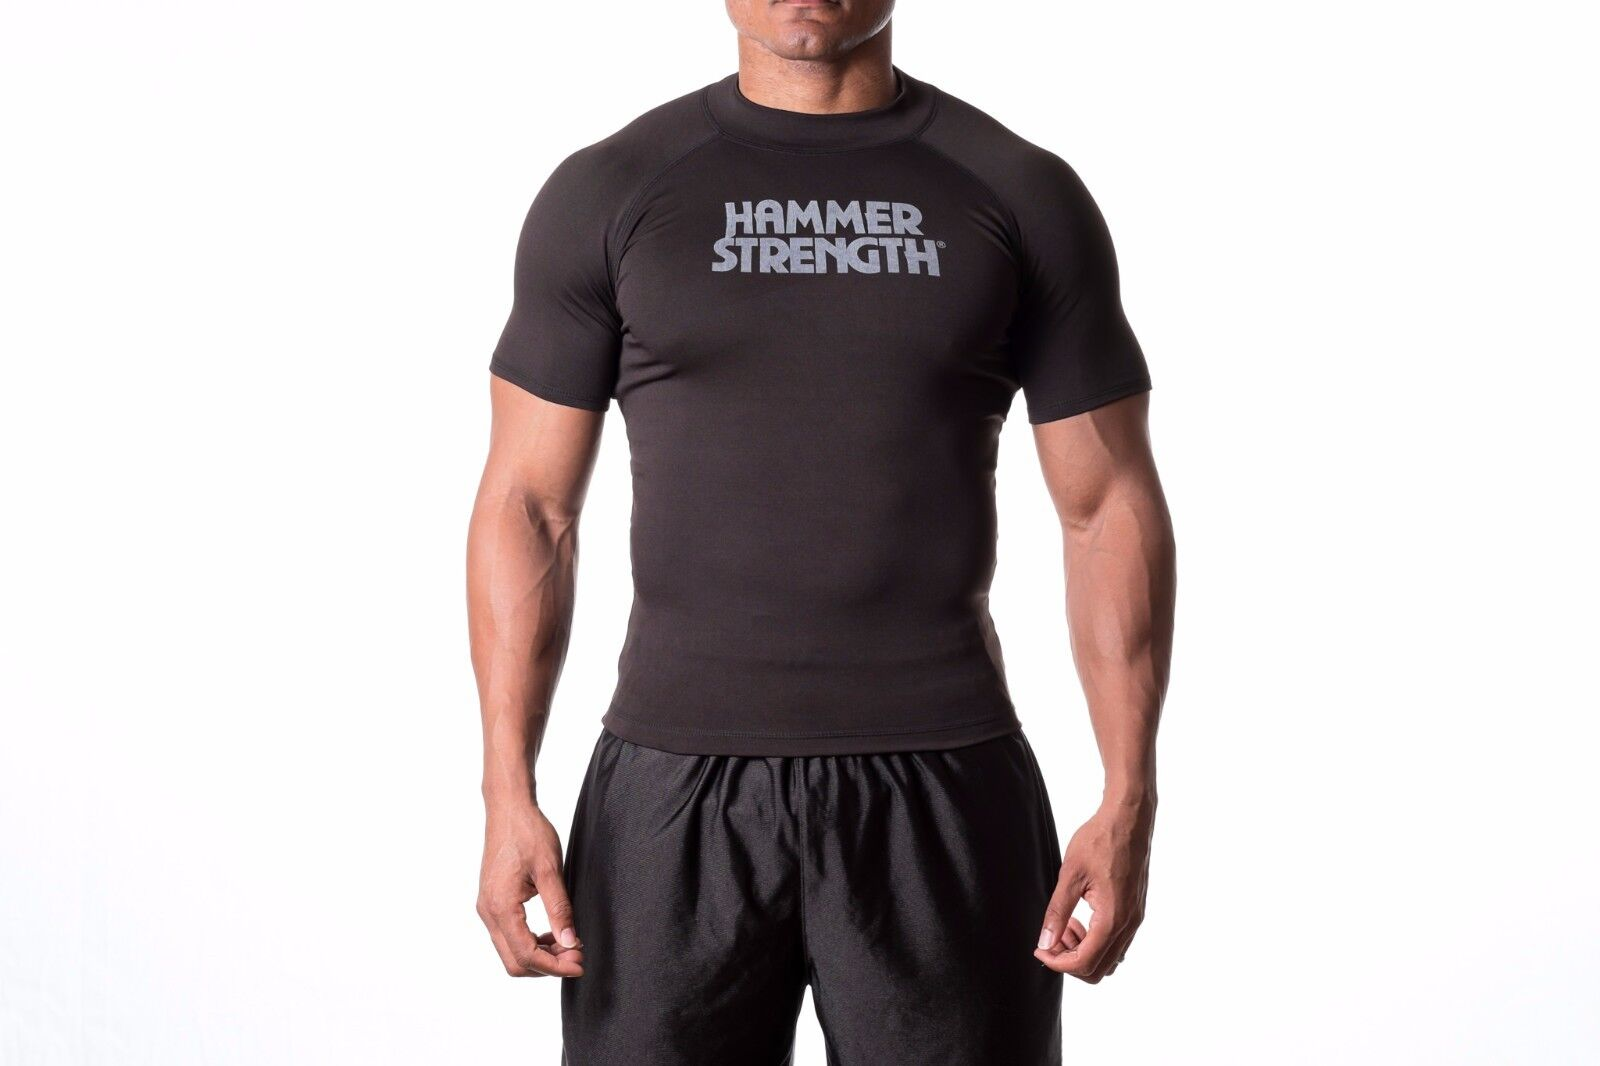 Hammer Strength Apparel Shirt Game Day Compression T Shirt Apparel Transpor Stay Dry Fabric 32f85f